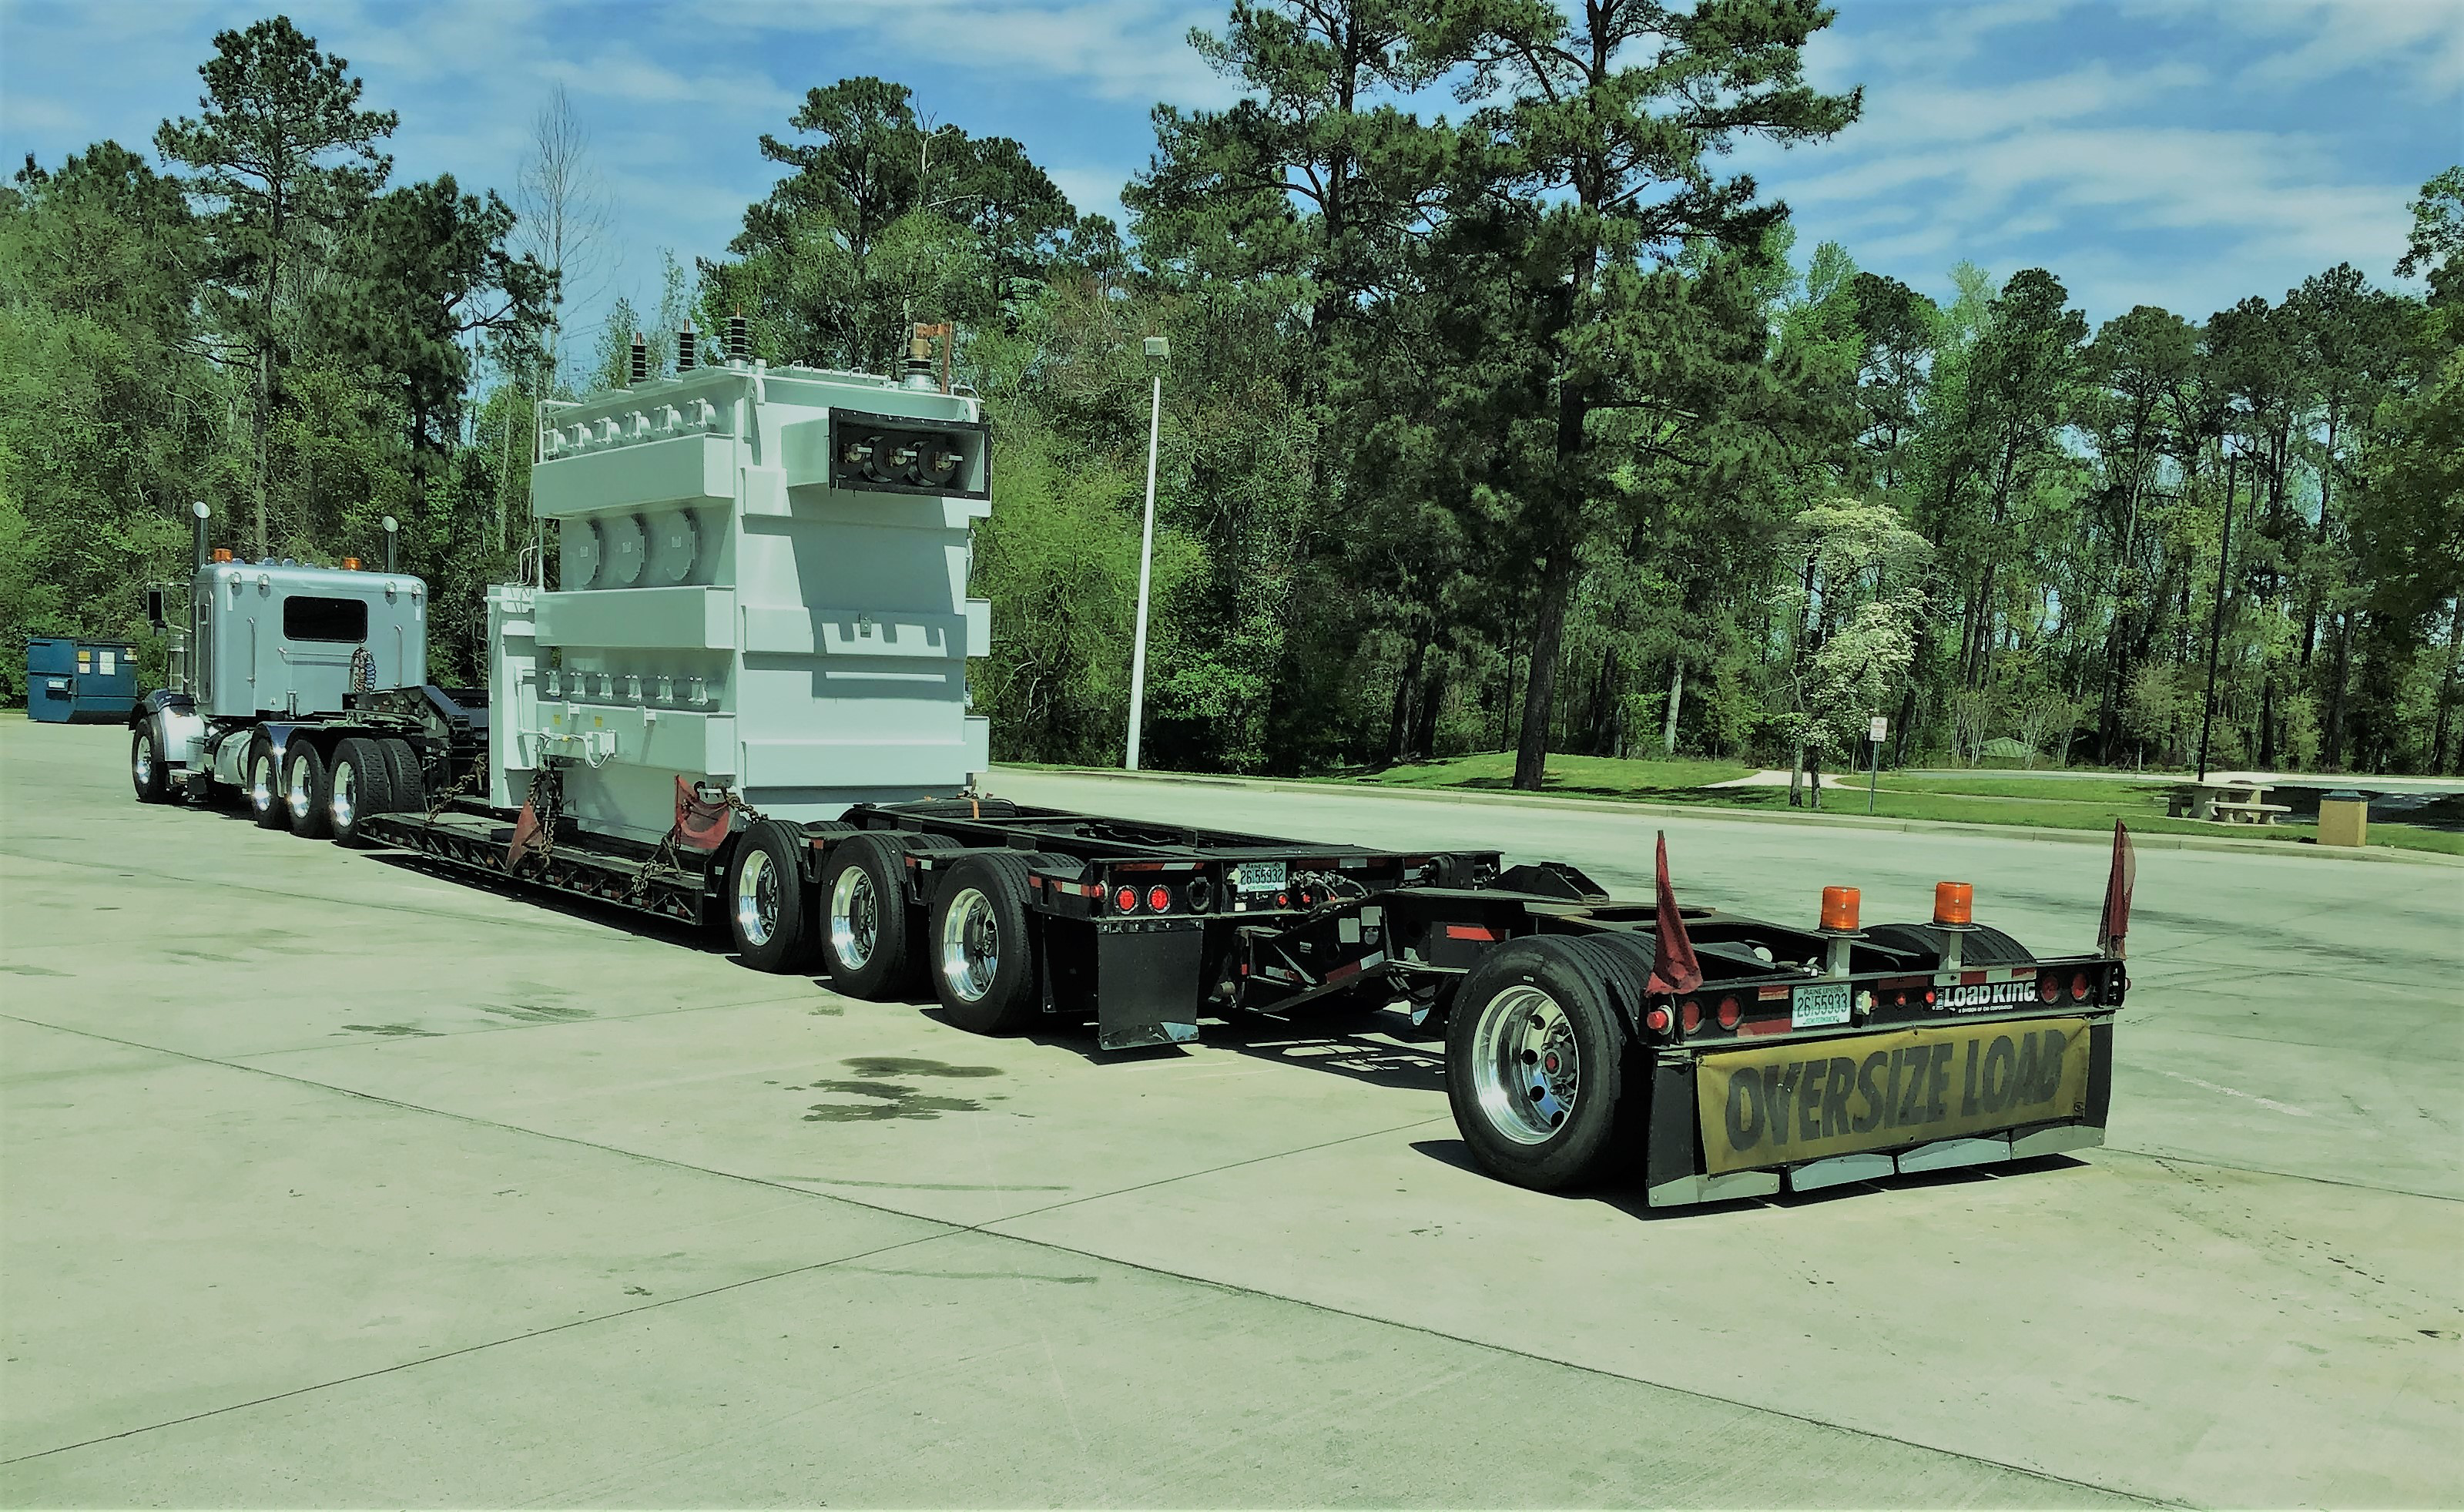 Bruce Arnold's semi truck carrying oversize load